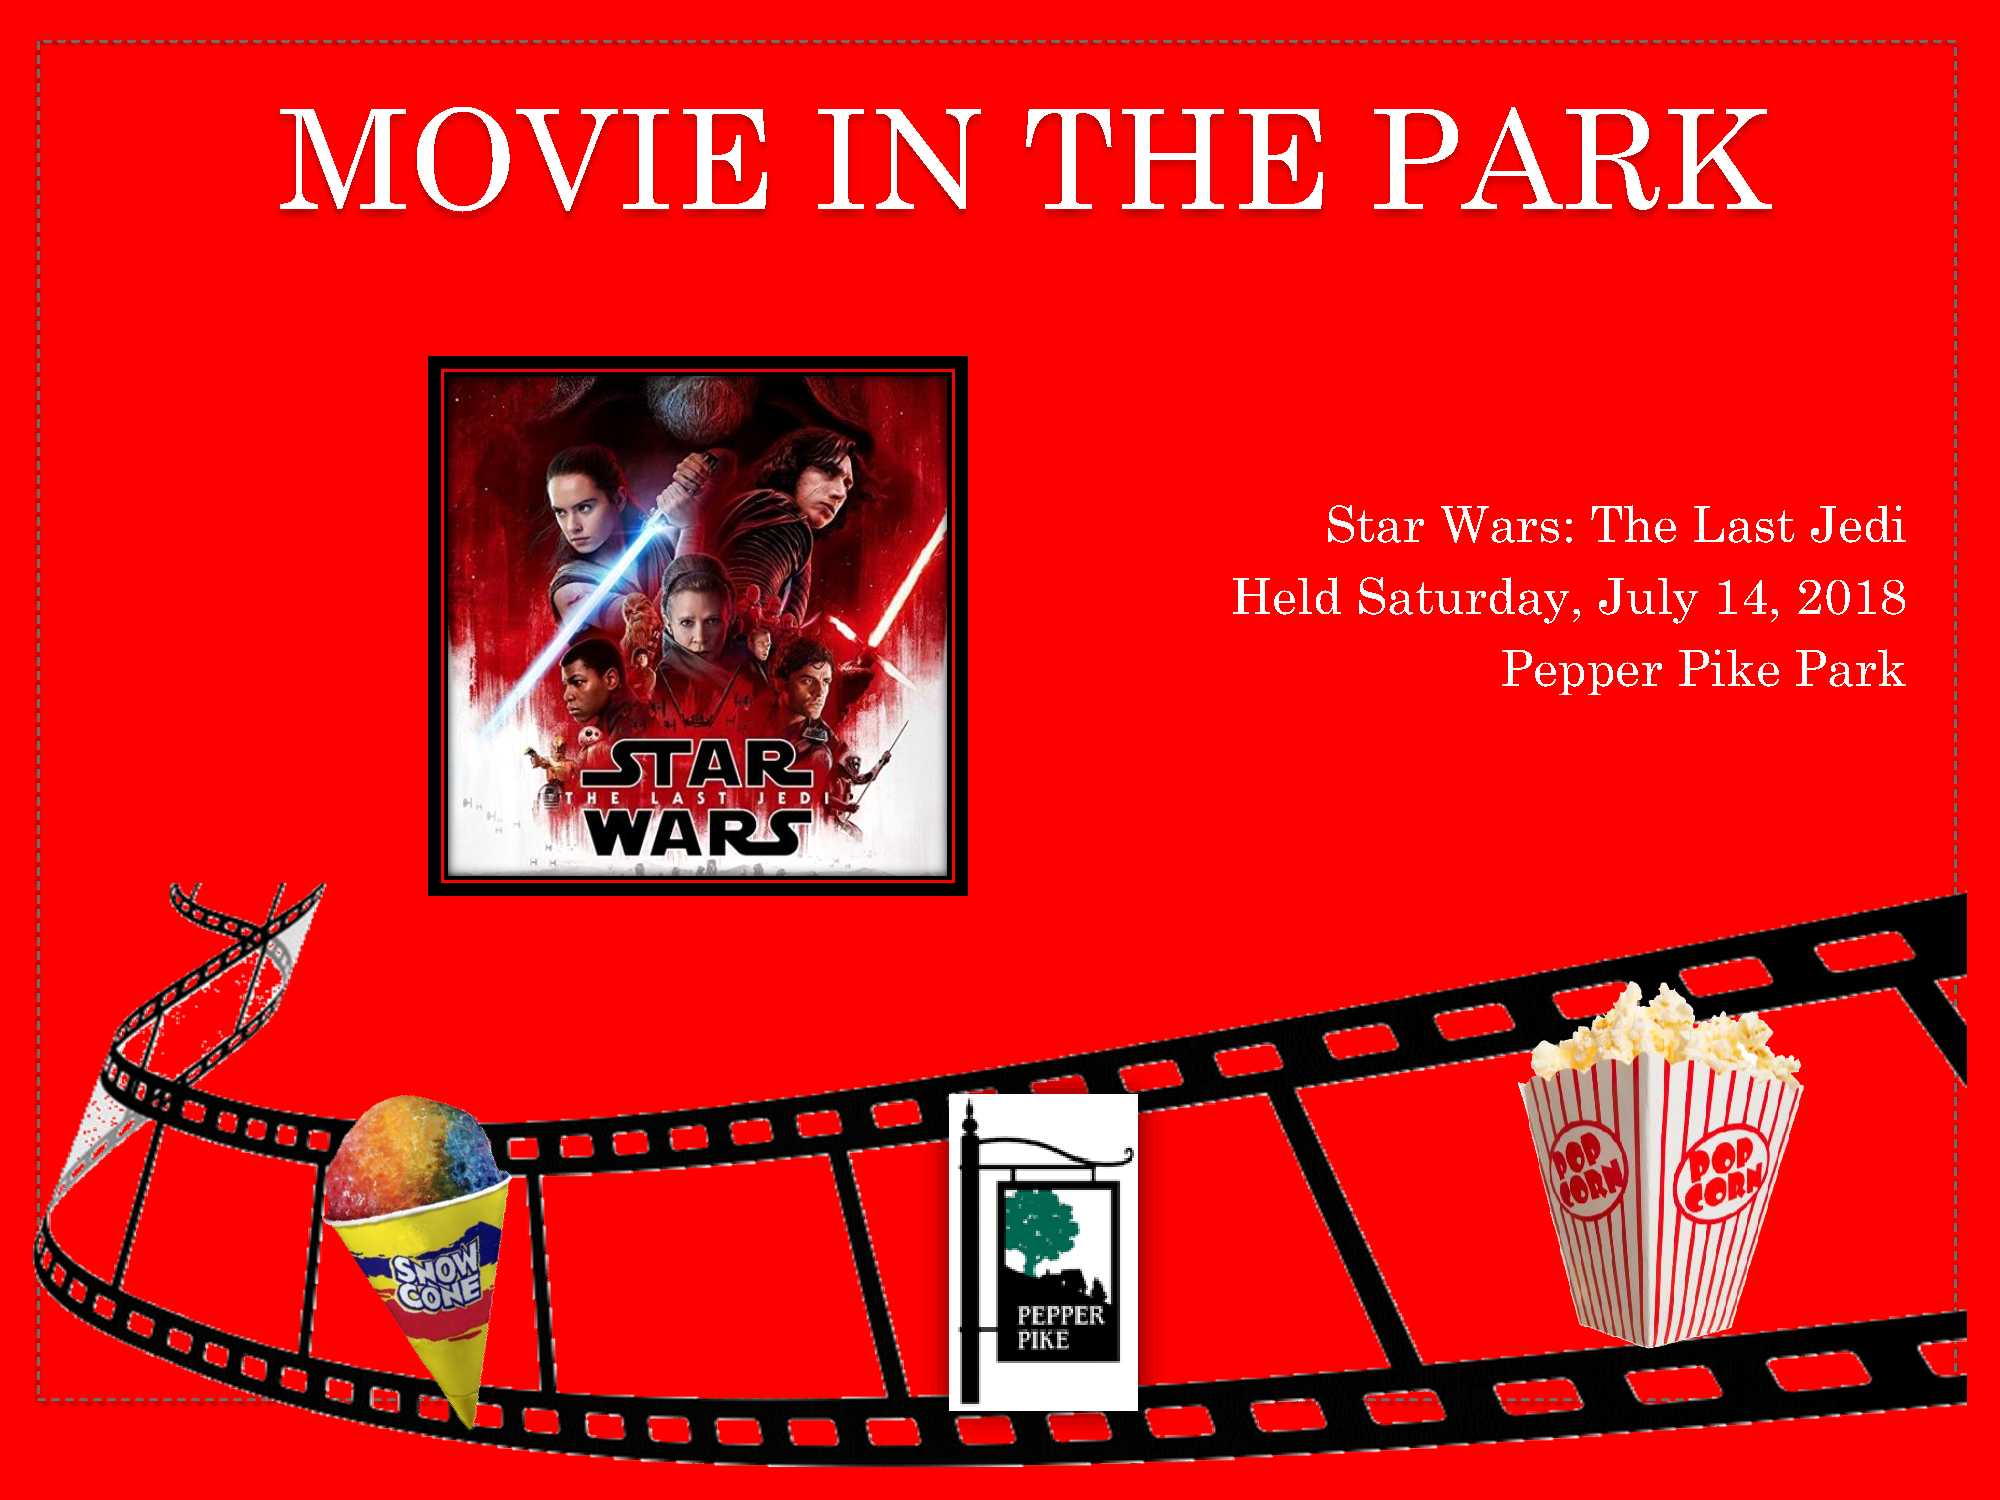 PHOTO GALLERY Movie in the Park Star Wars_1